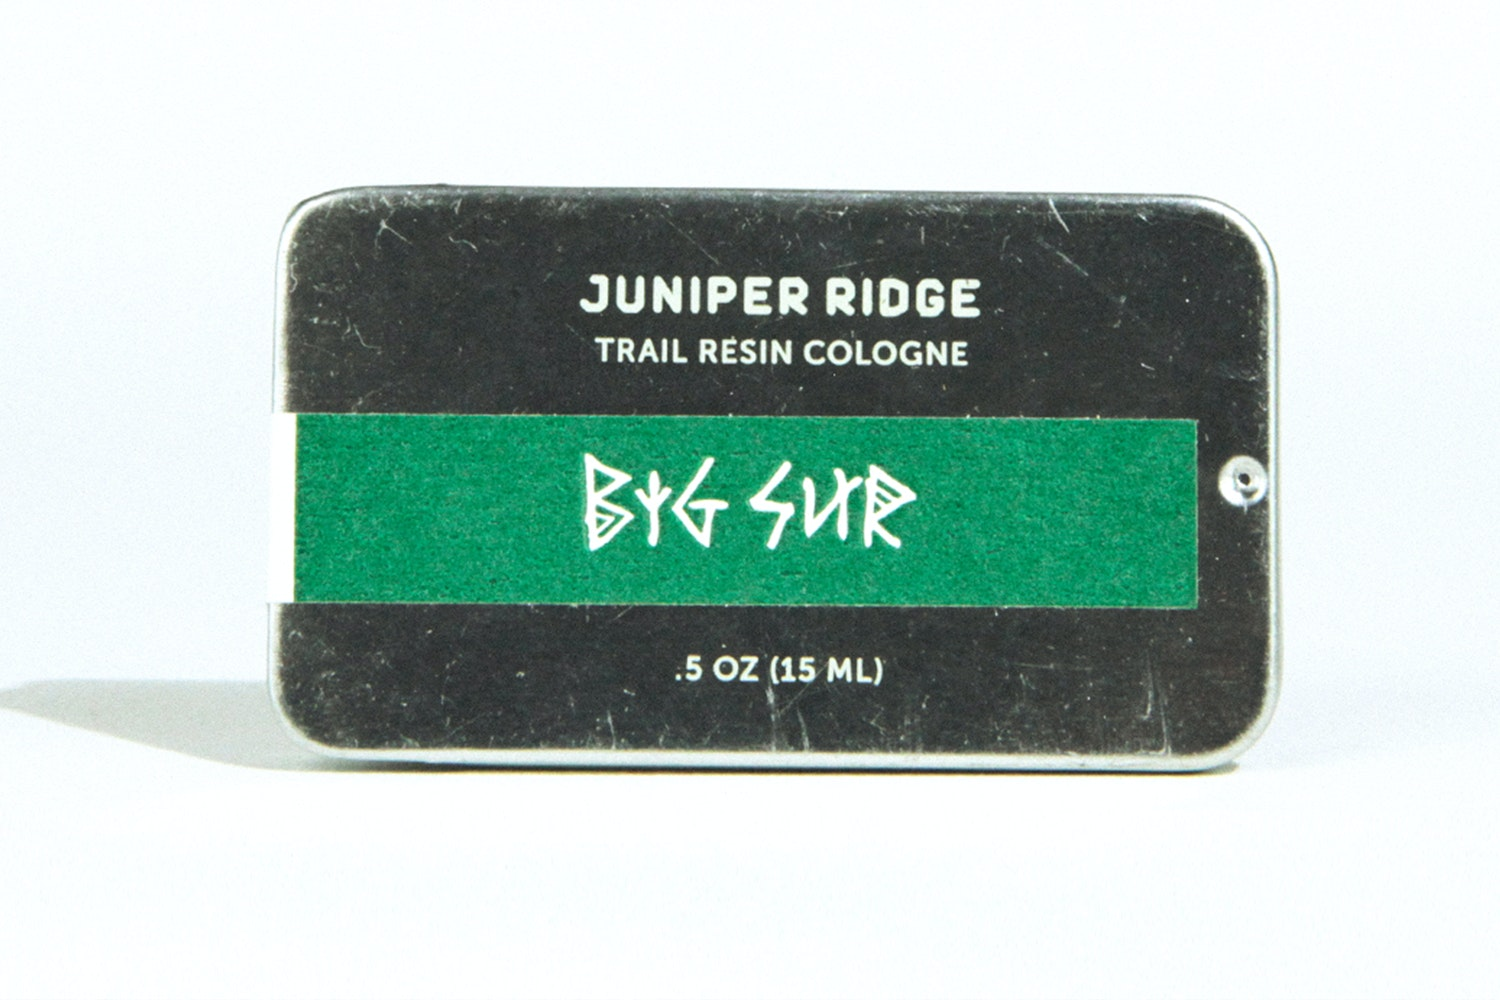 Juniper Ridge Trail Resin Cologne